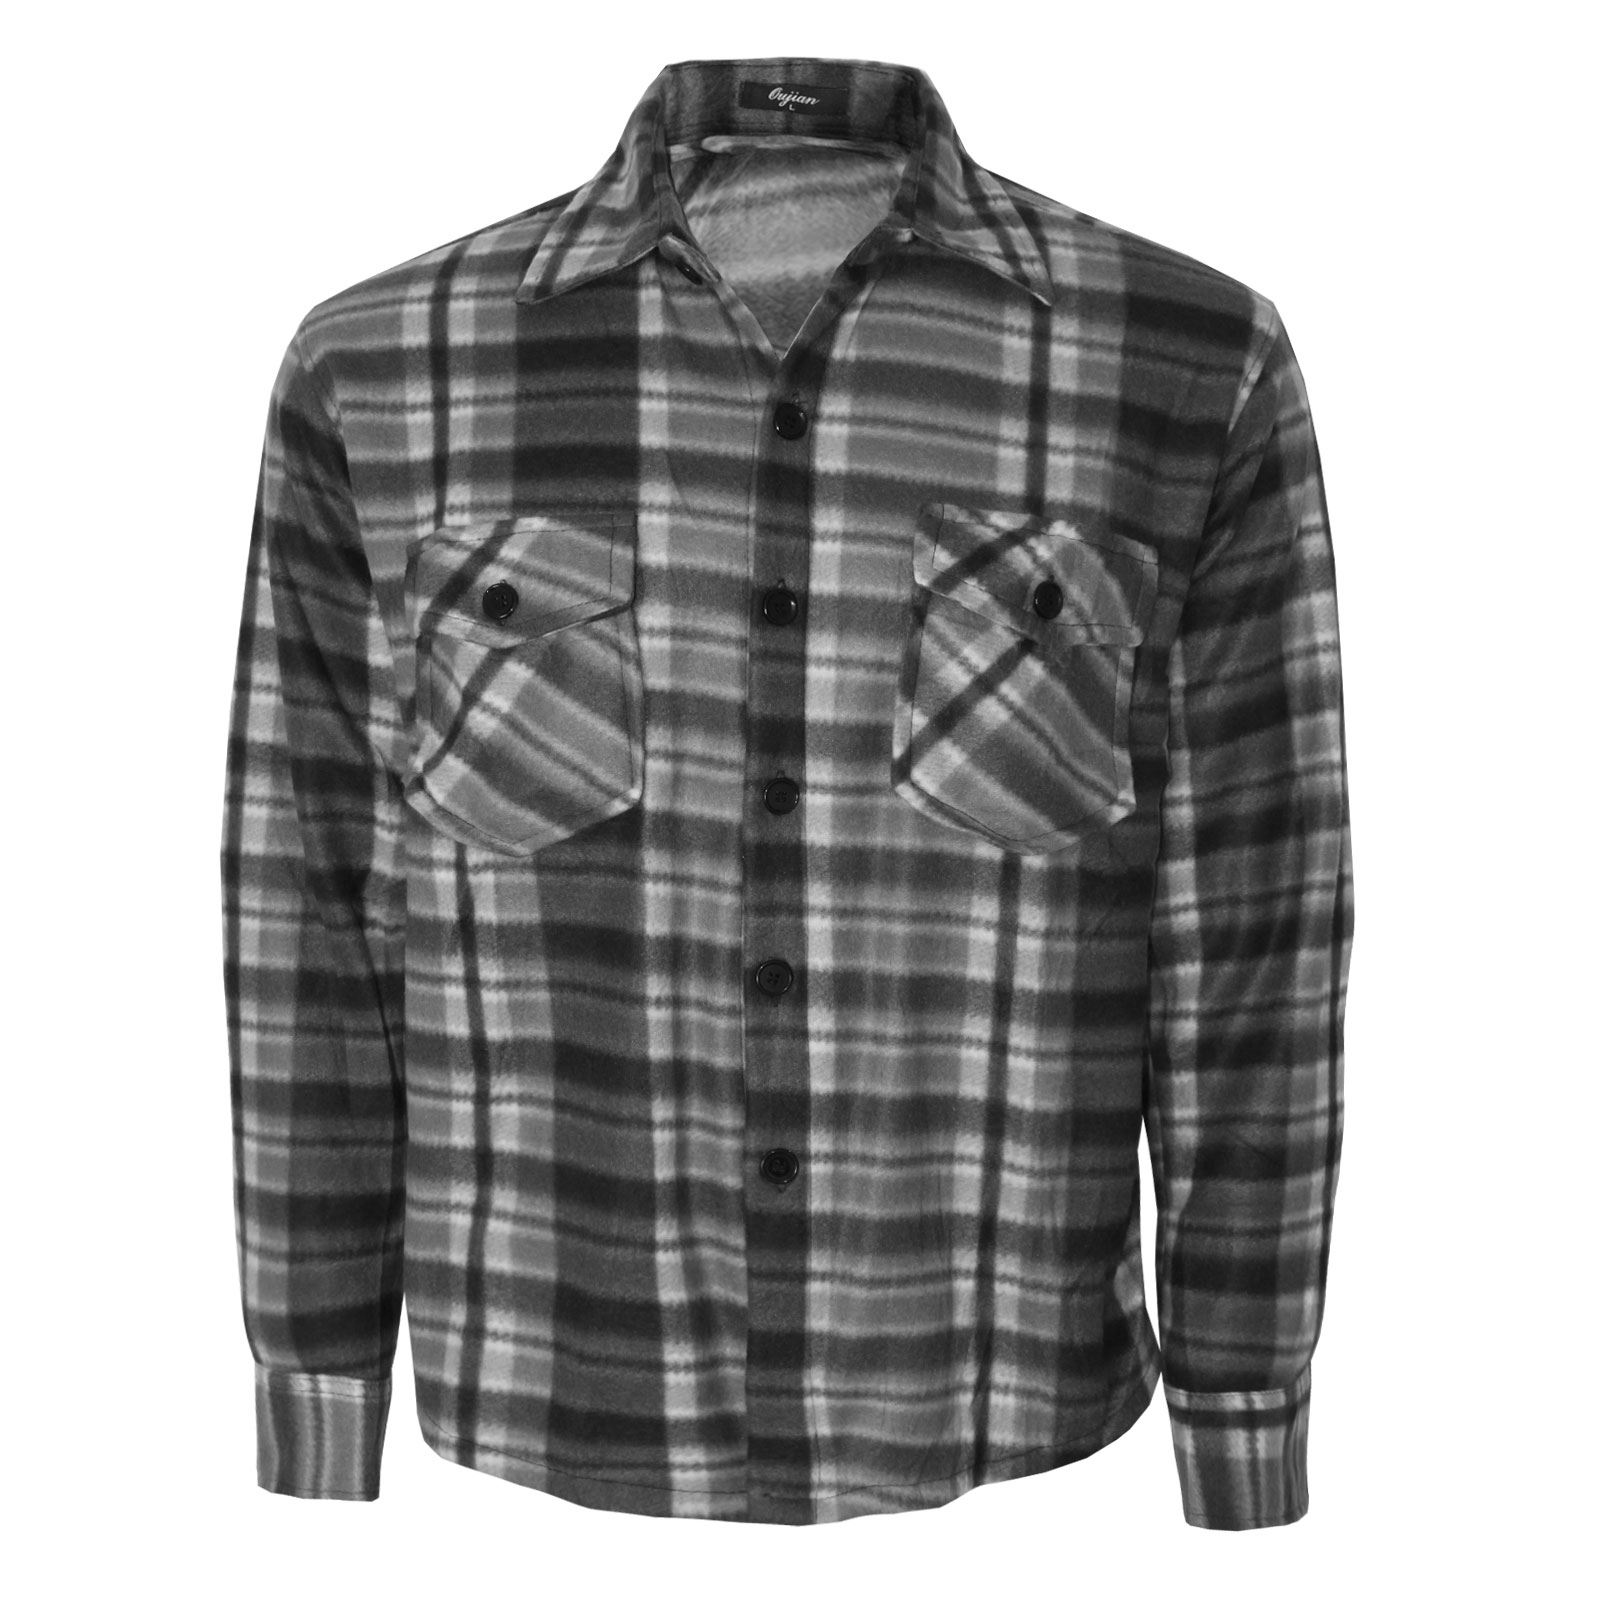 MENS FLEECE LINED CHECK SHIRT WINTER THERMAL BUTTON TOP ...